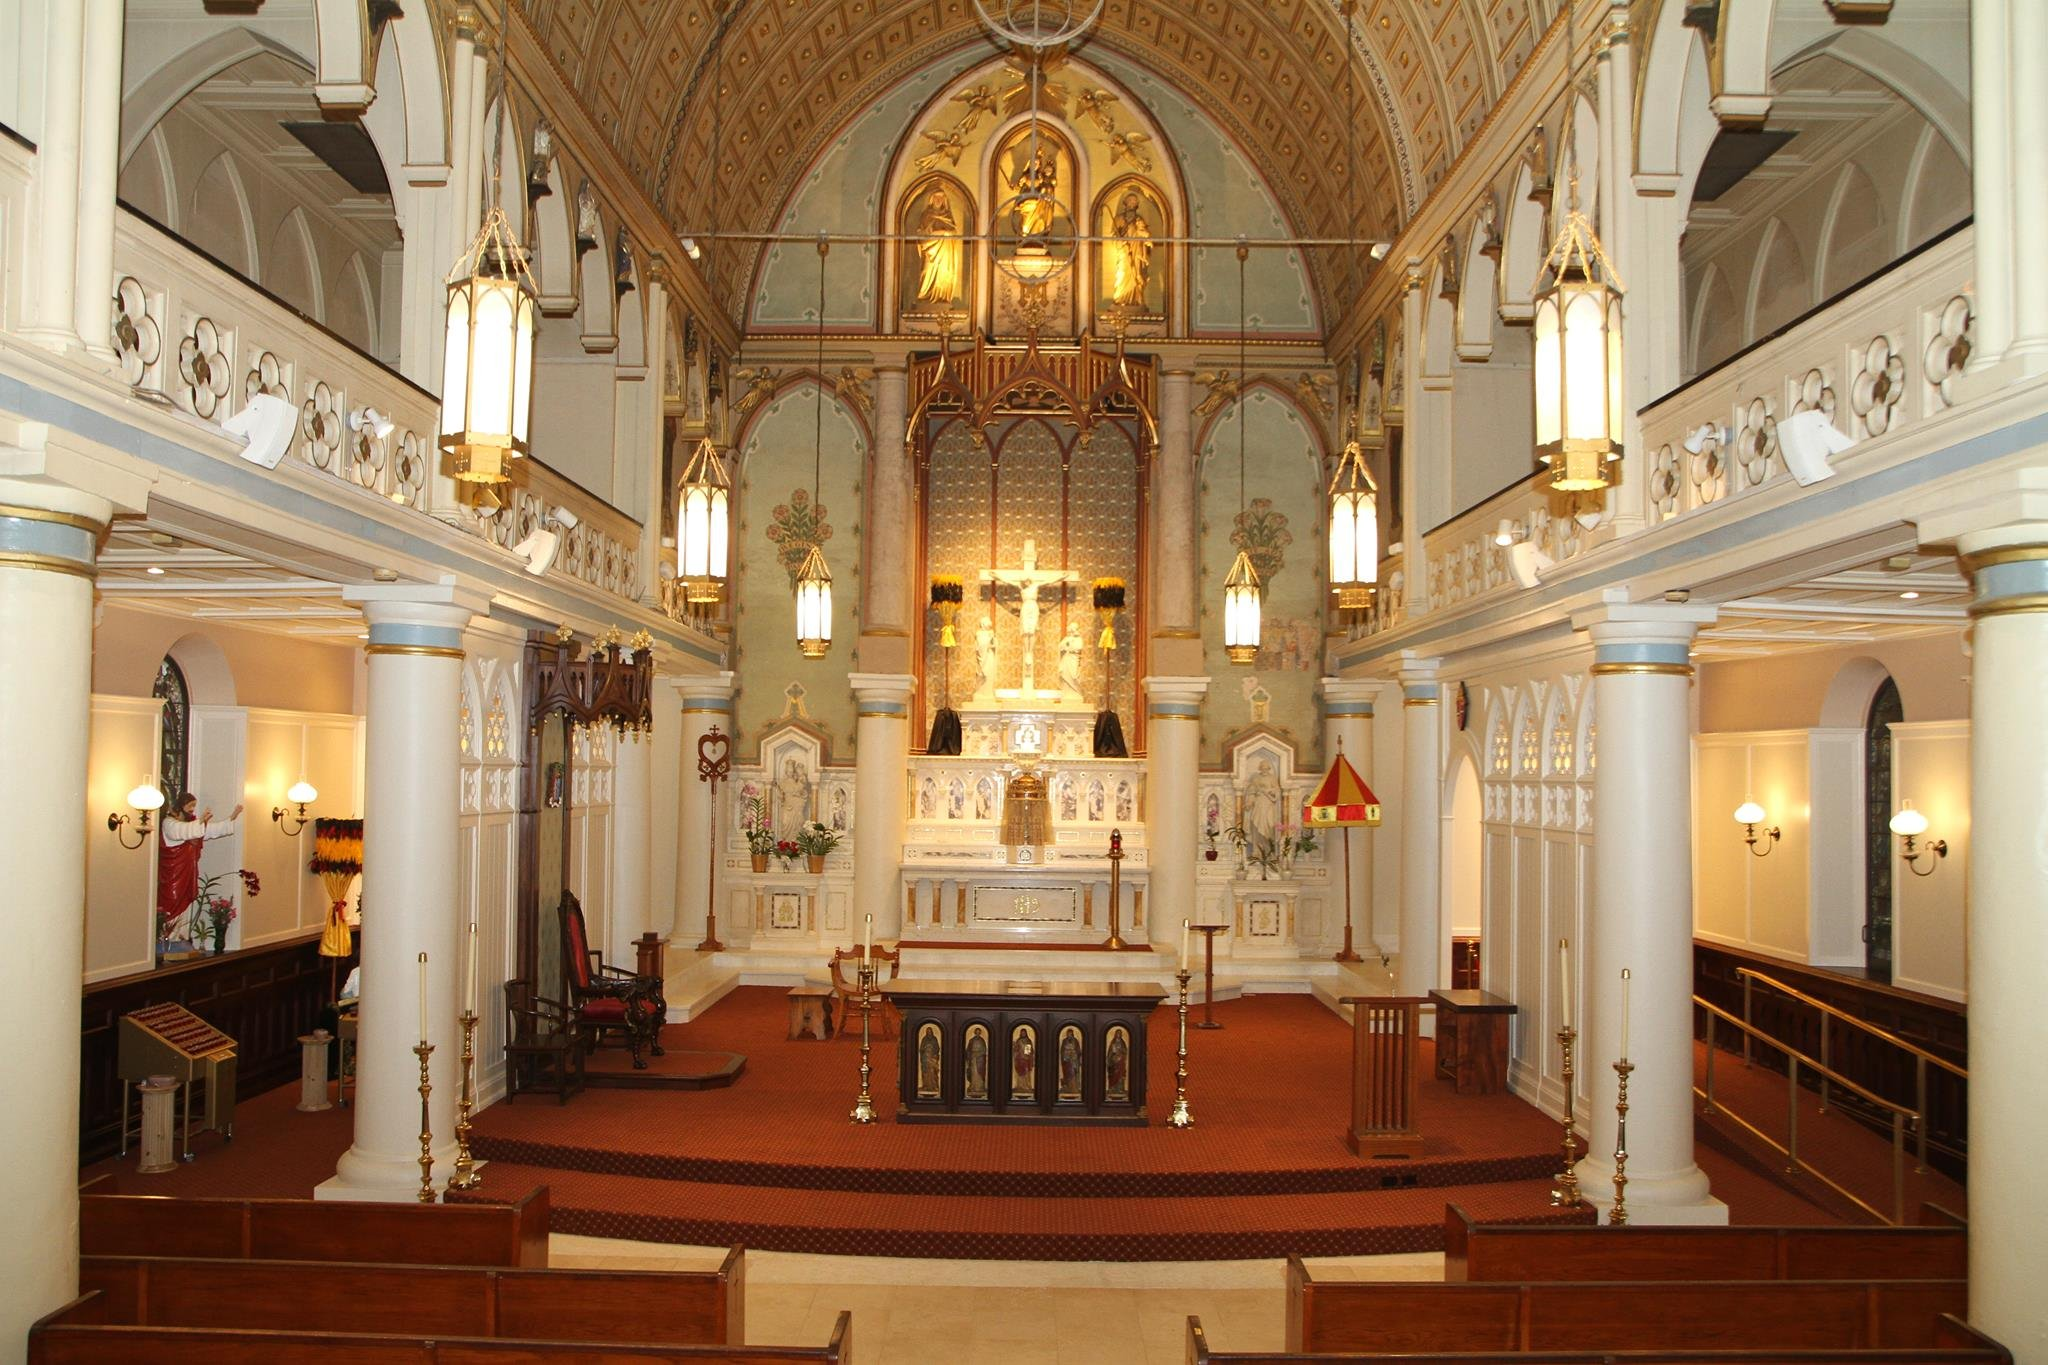 Interior of the Cathedral Basilica of Our Lady of Peace